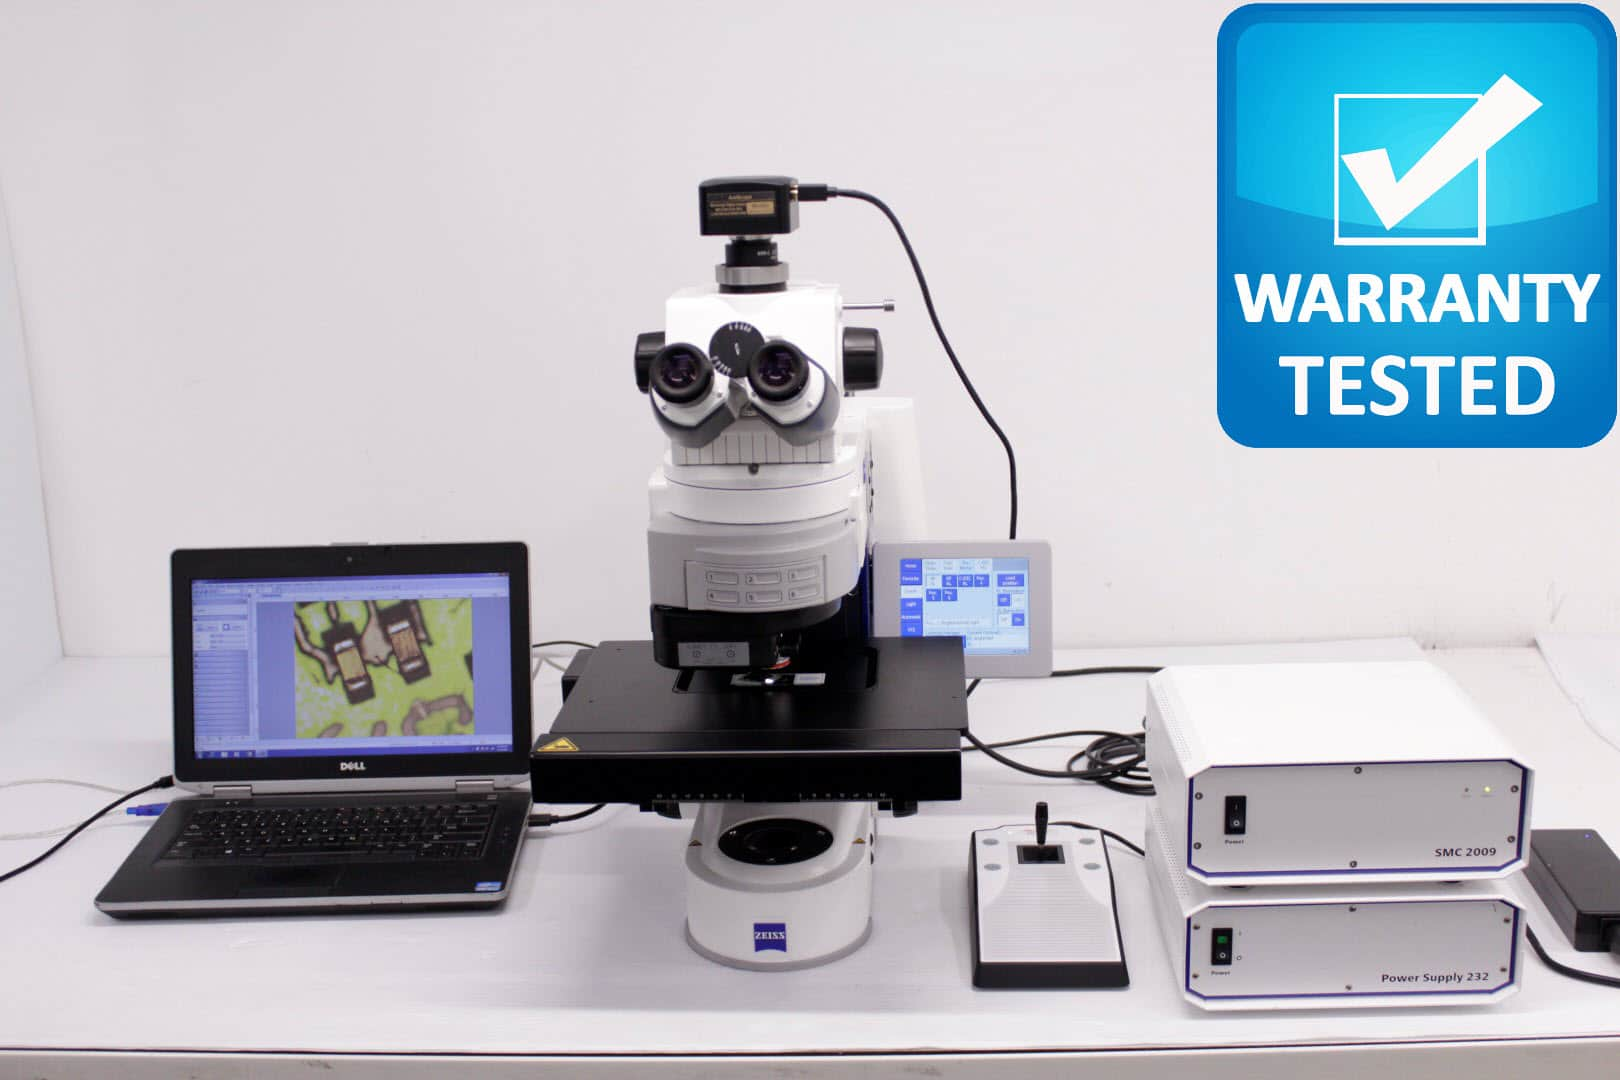 Zeiss AXIO Imager.M2m Motorized Microscope DIC Polarization